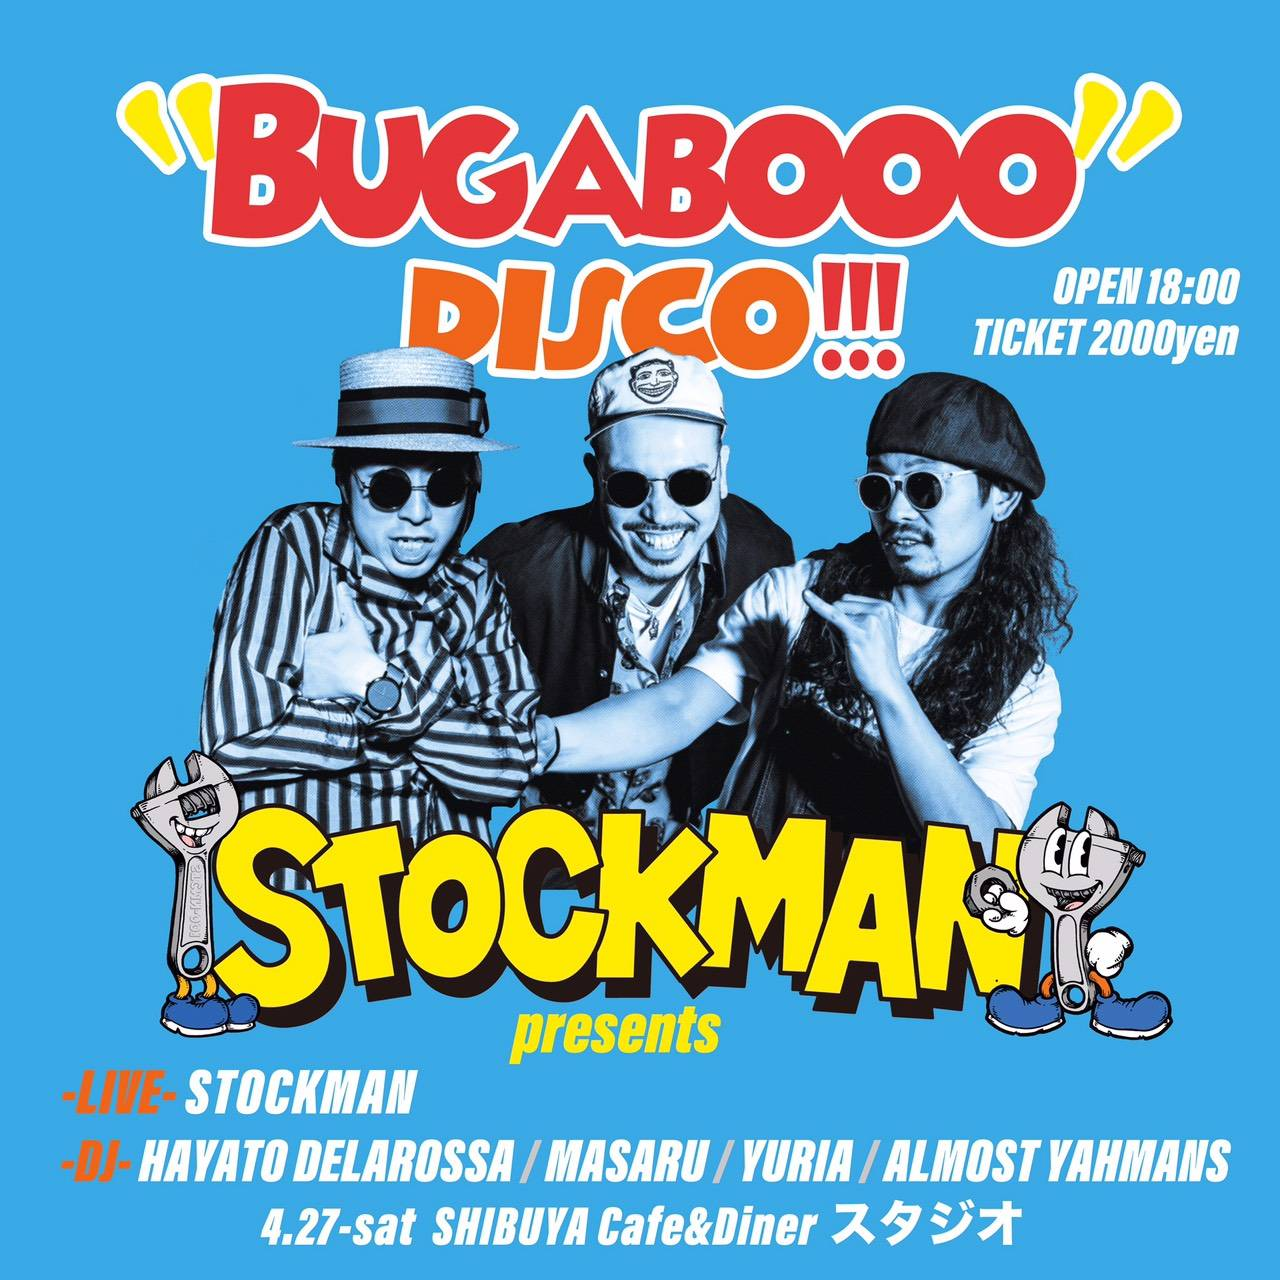 4/27(Sat)  渋谷Cafe&Diner スタジオ STOCKMAN presents 「Bugabooo disco!!!」